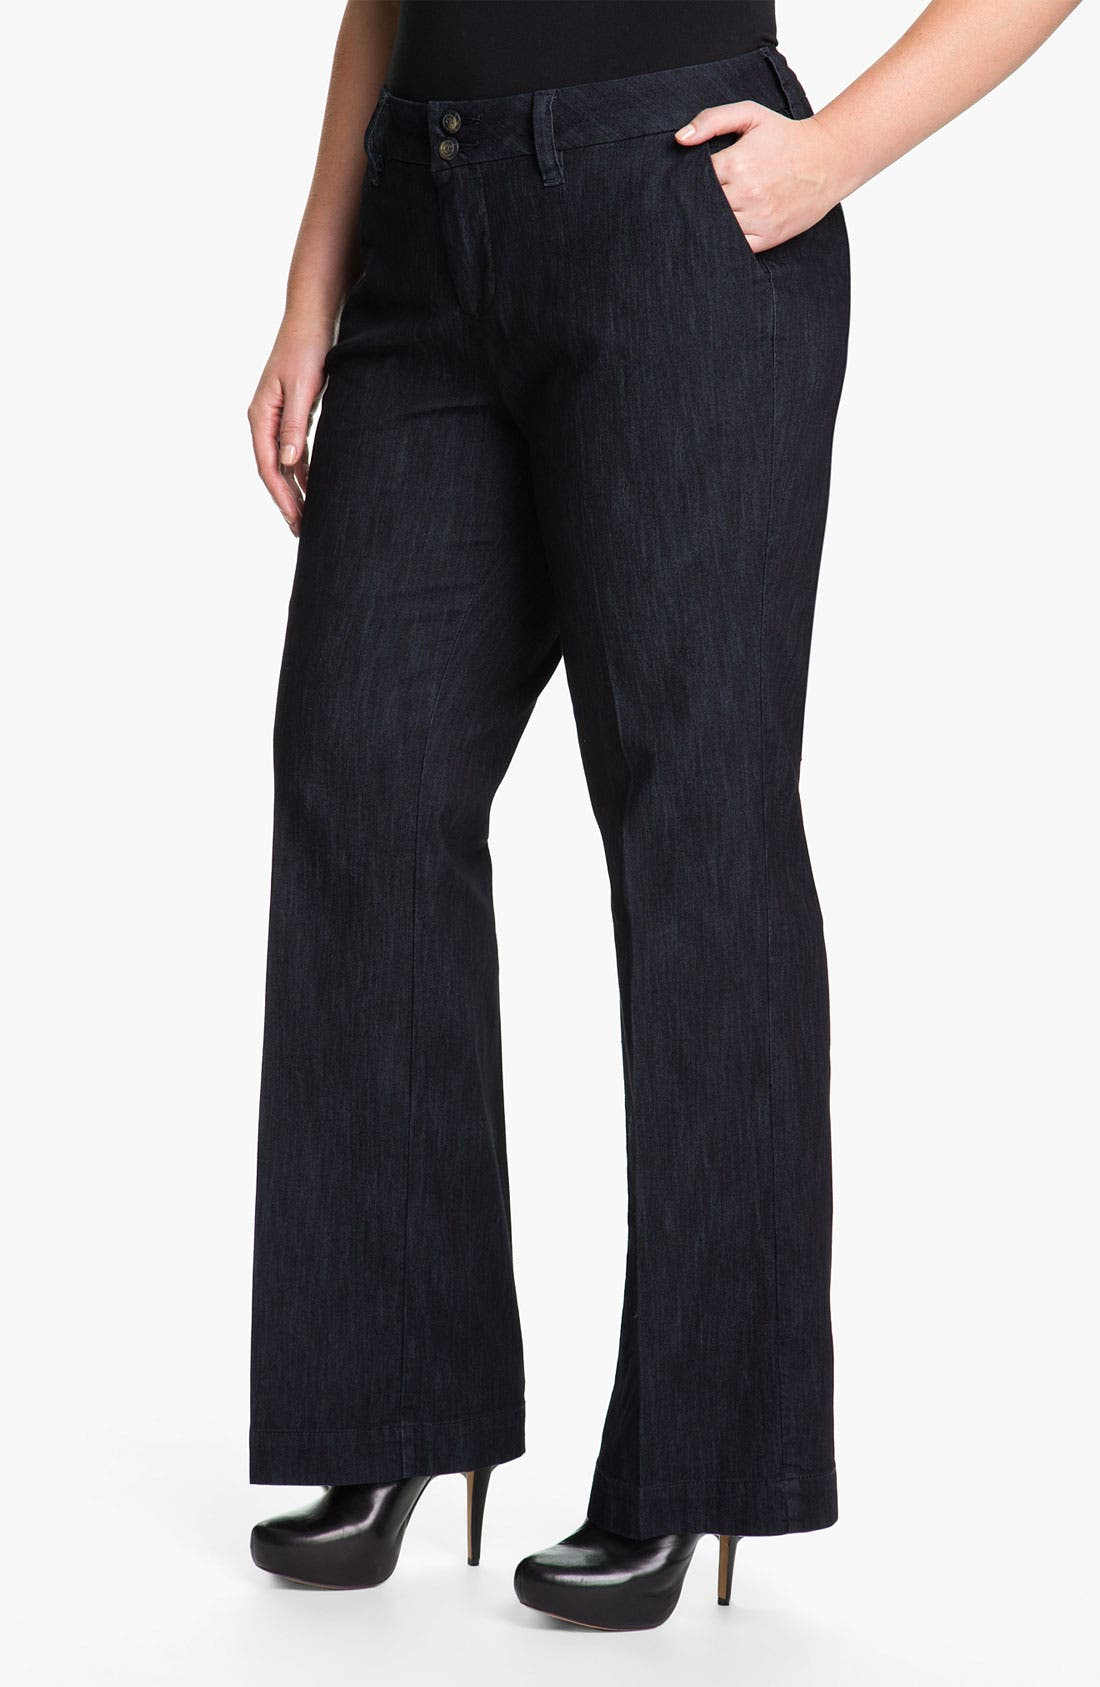 Alternate Image 1 Selected - Jag Jeans 'Pearl' Trouser Jeans (Plus Size)